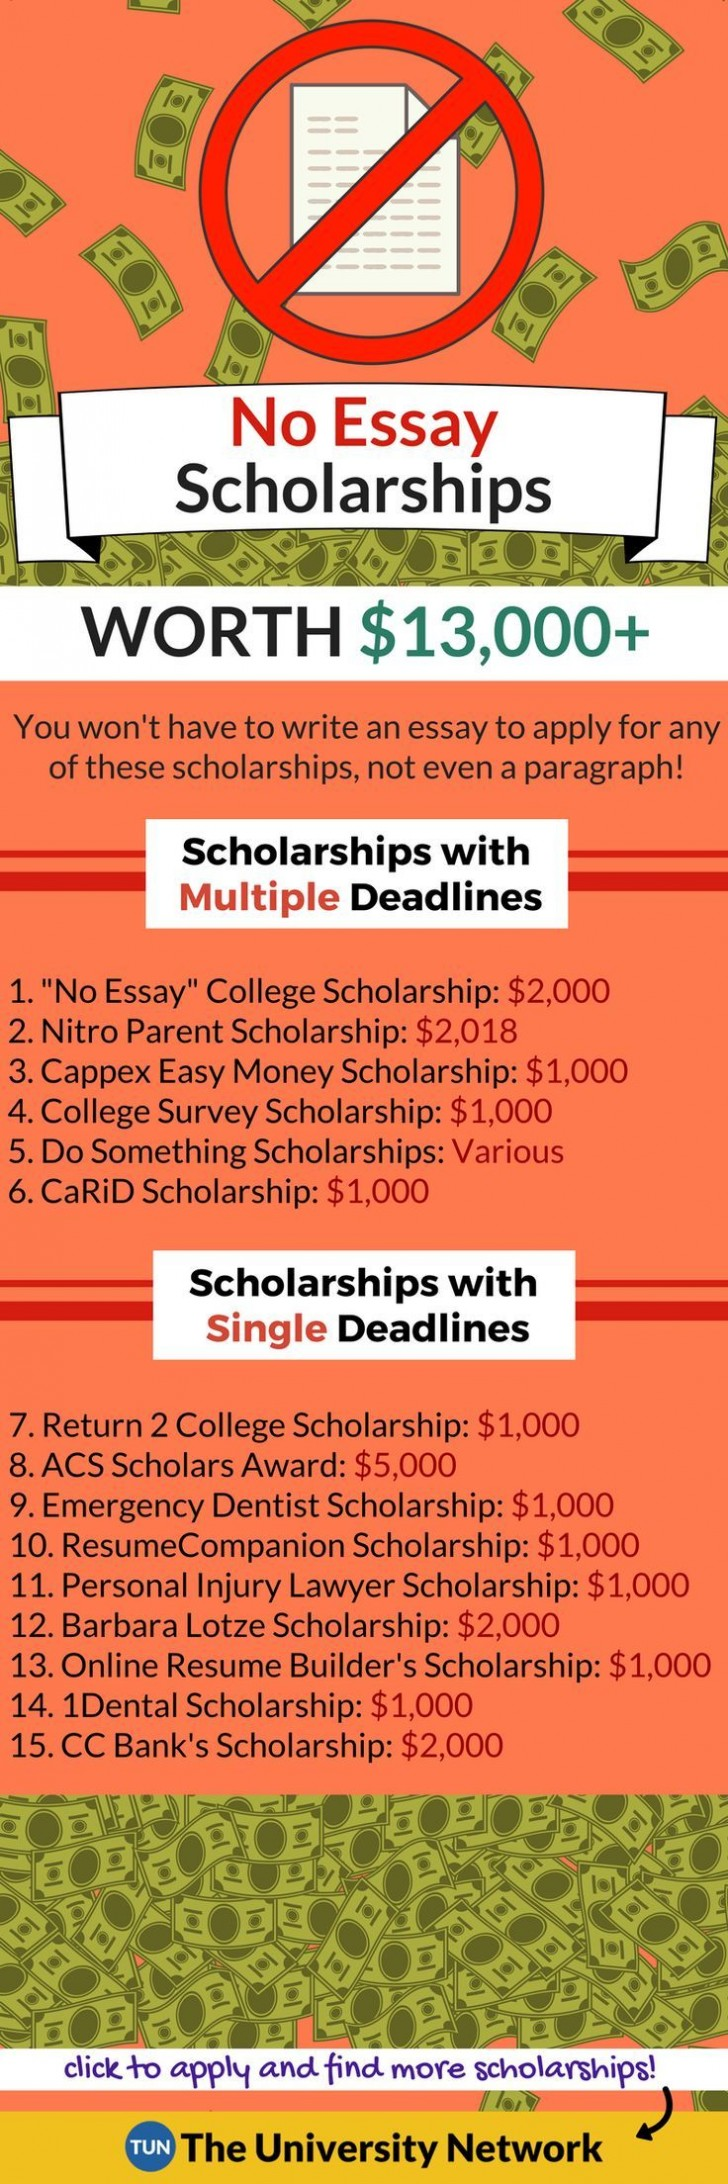 013 Essay Example No Exceptional Scholarships December 2018 For Undergraduates 728